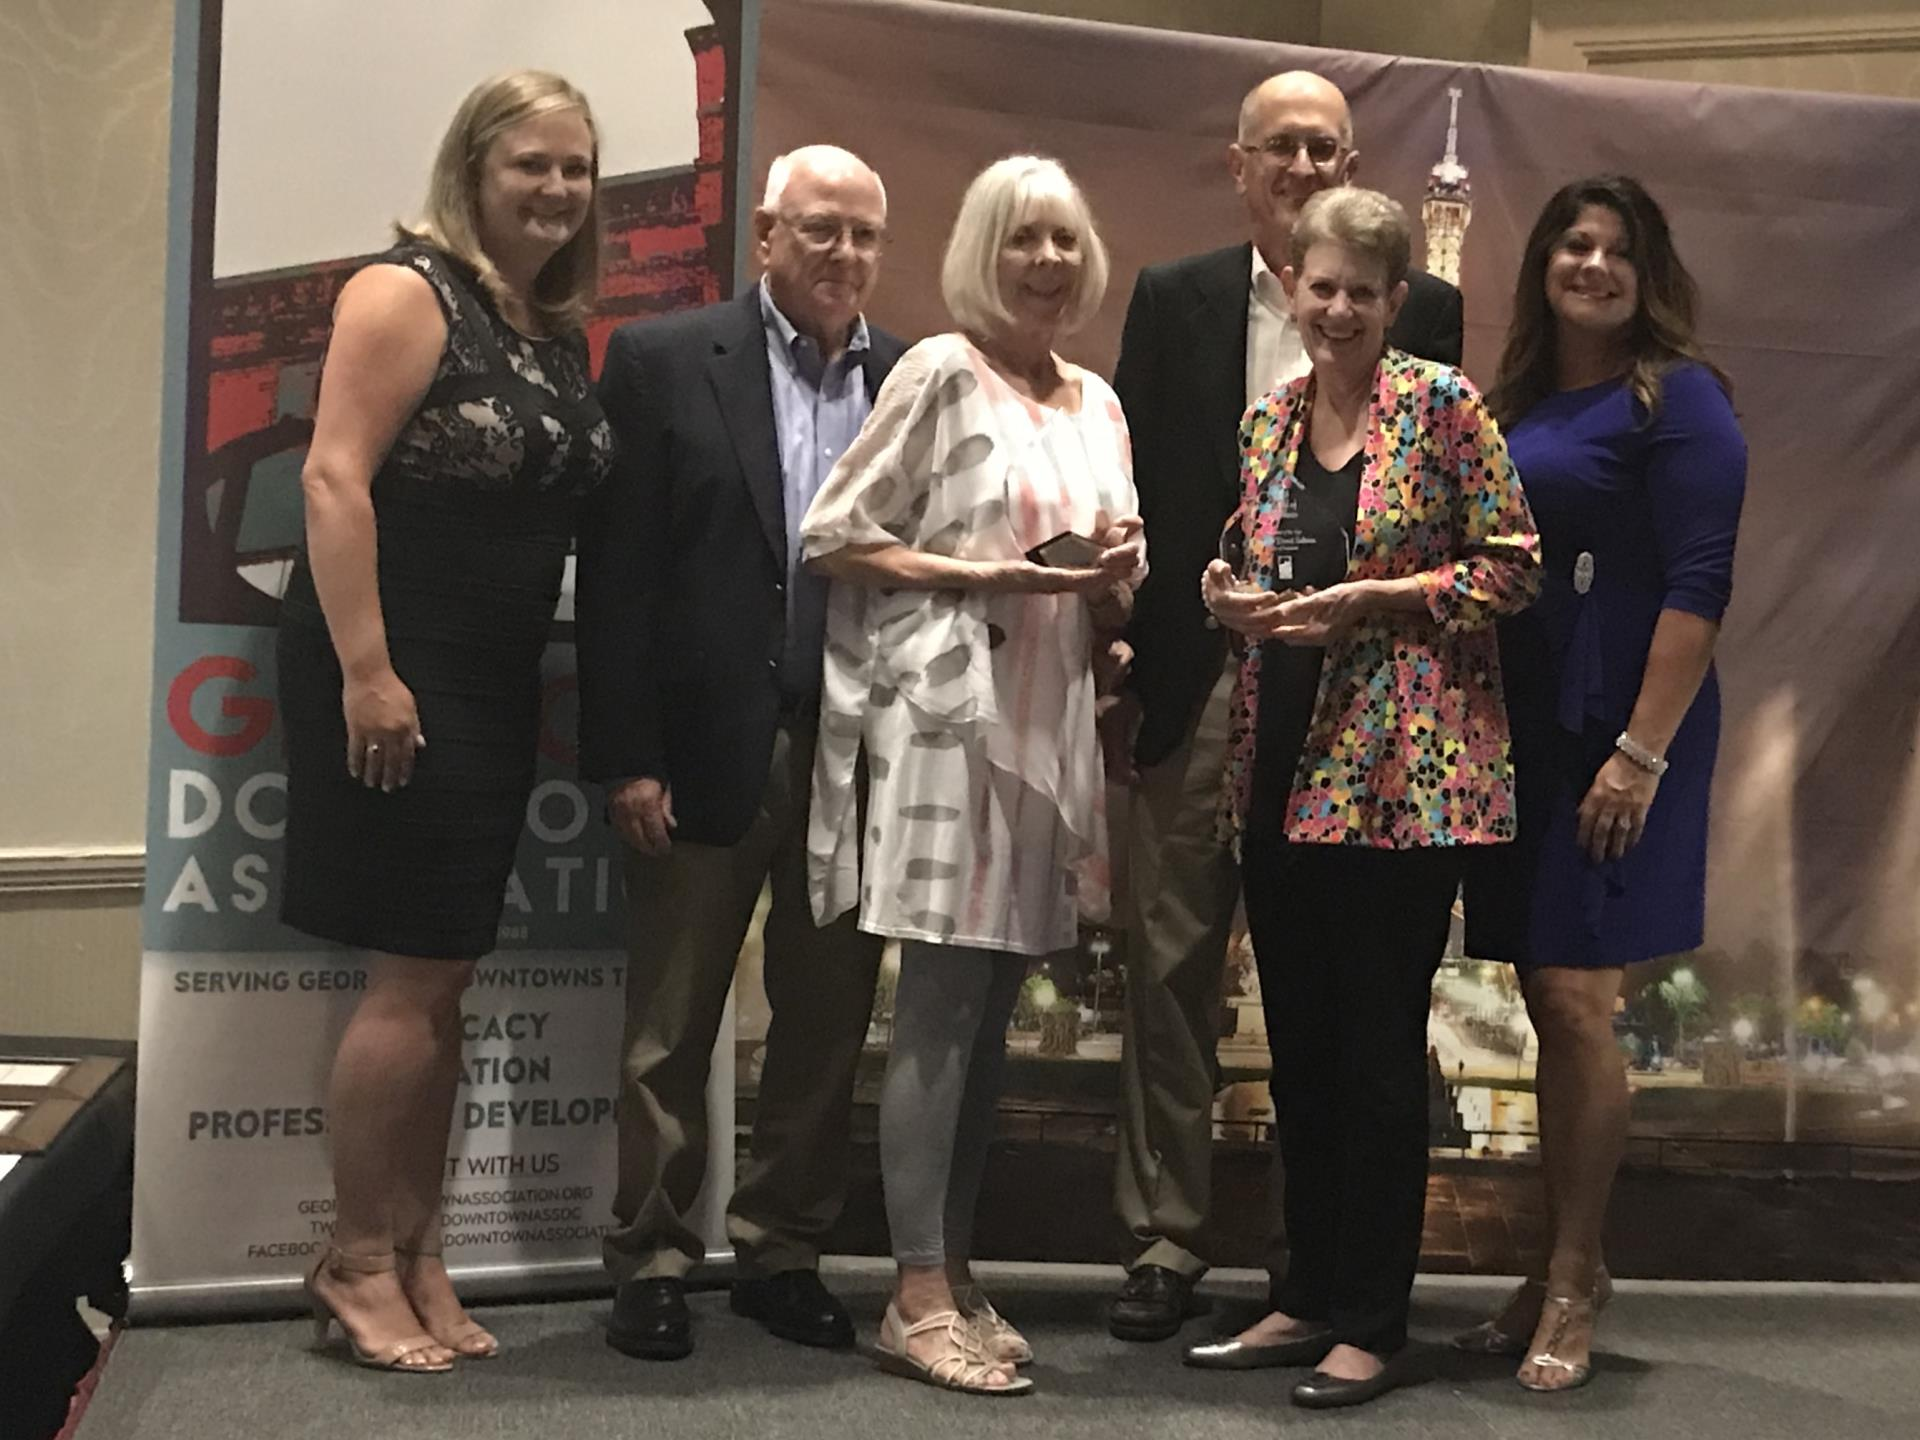 GA Downtown Awards_2018 Volunteers of the Year